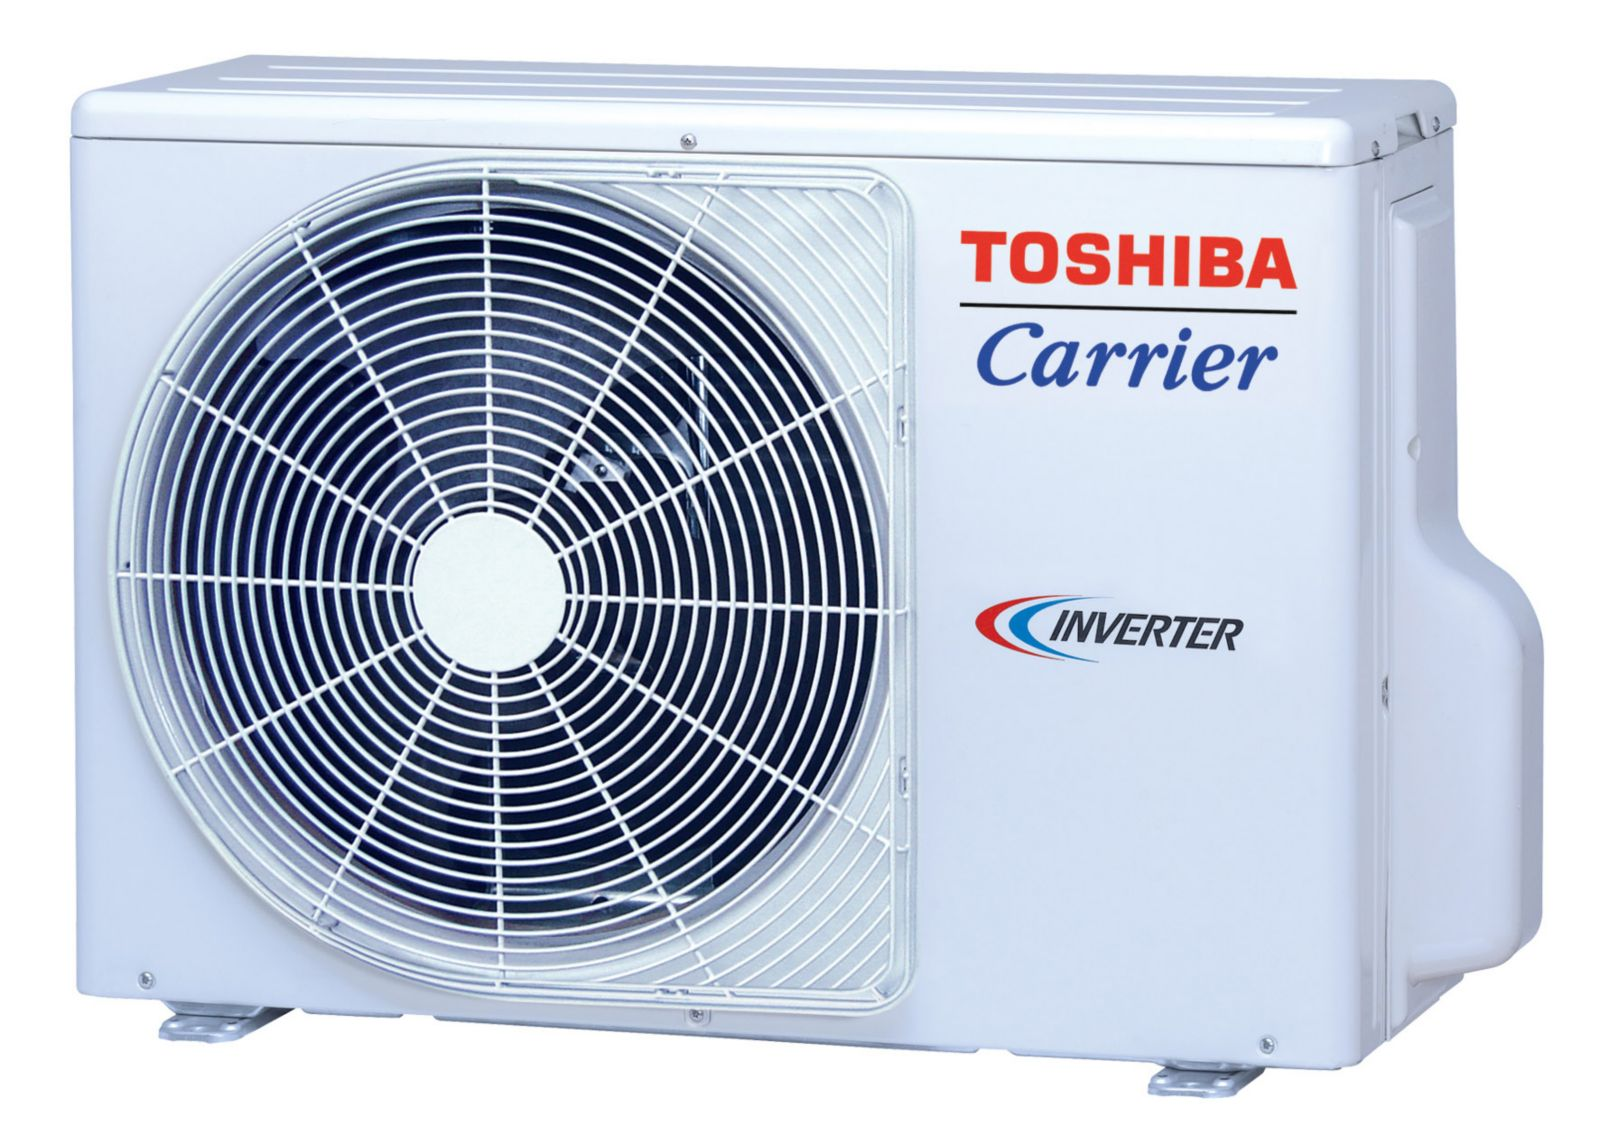 Air conditioning brand Toshiba Carrier